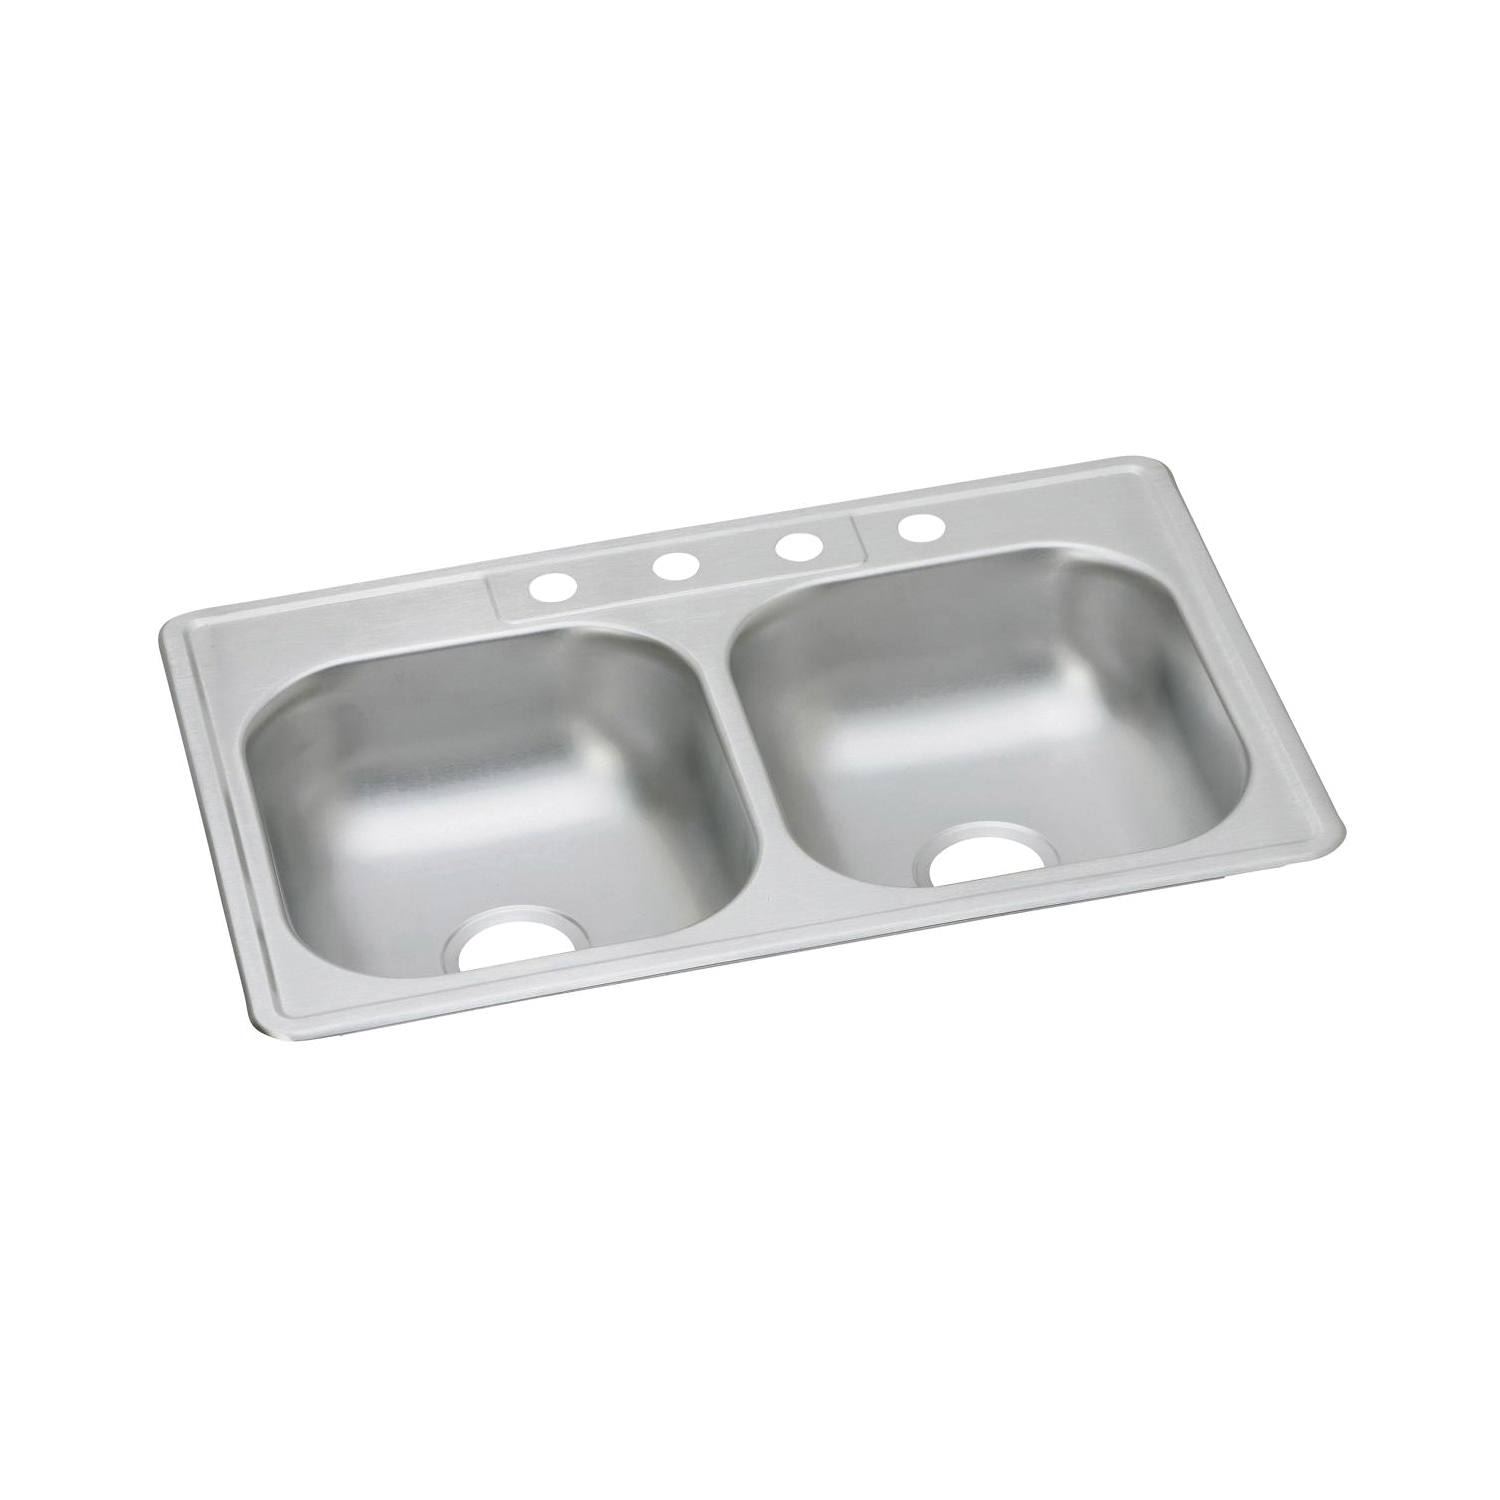 Elkay D233223 Dayton Kitchen Sink, Rectangular, 3 Faucet Holes, 33 in W x 22 in D x 6-9/16 in H, Top Mount, Stainless Steel, Satin